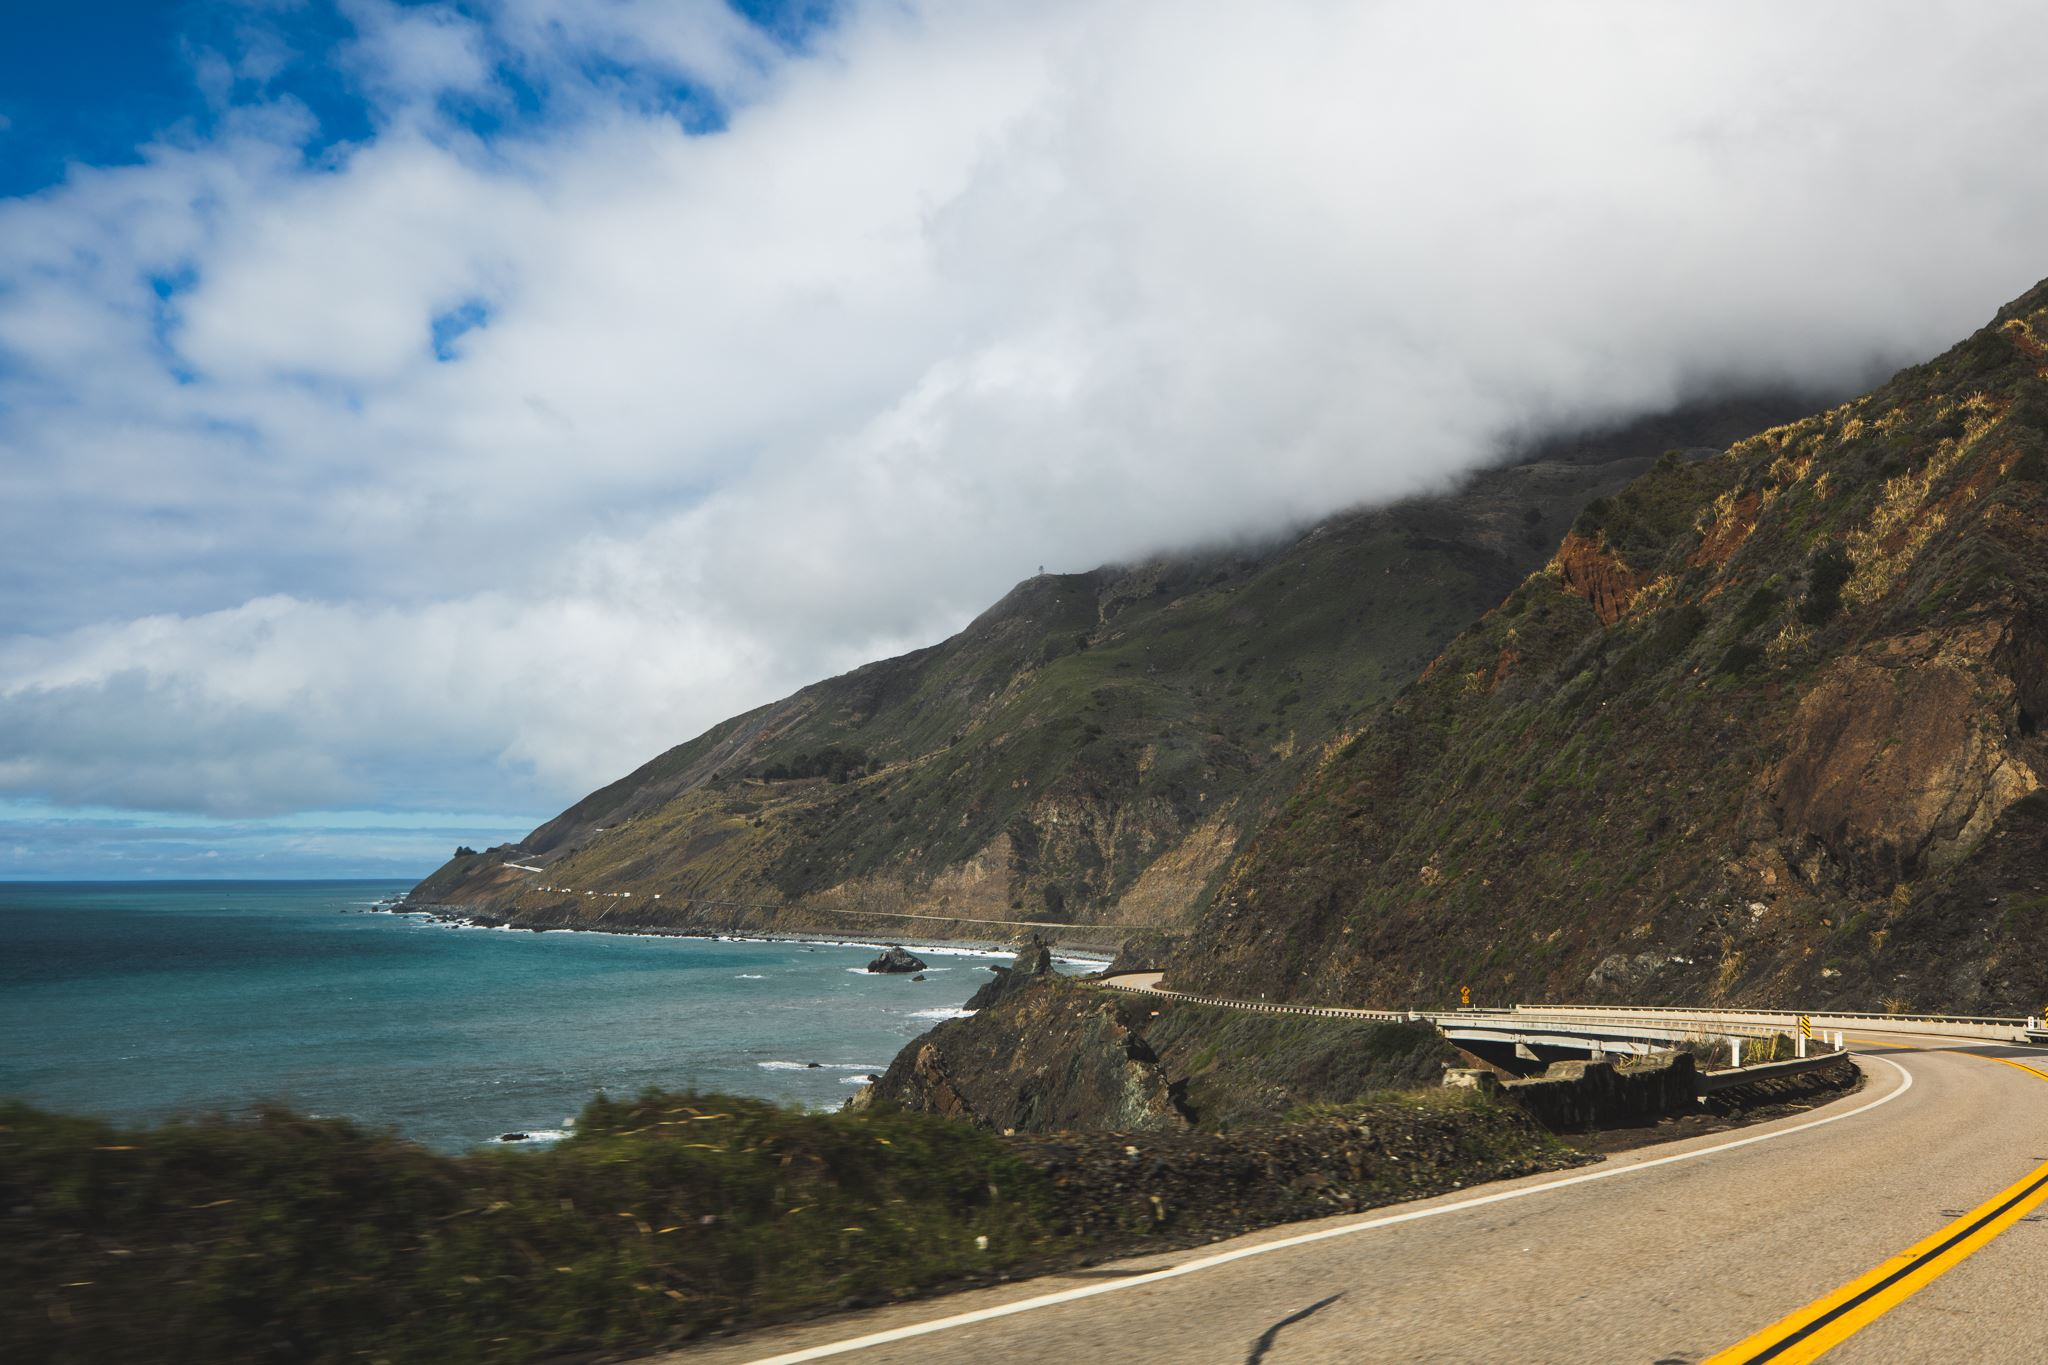 Any place by the coast provides beautiful views like this for a true taste California.